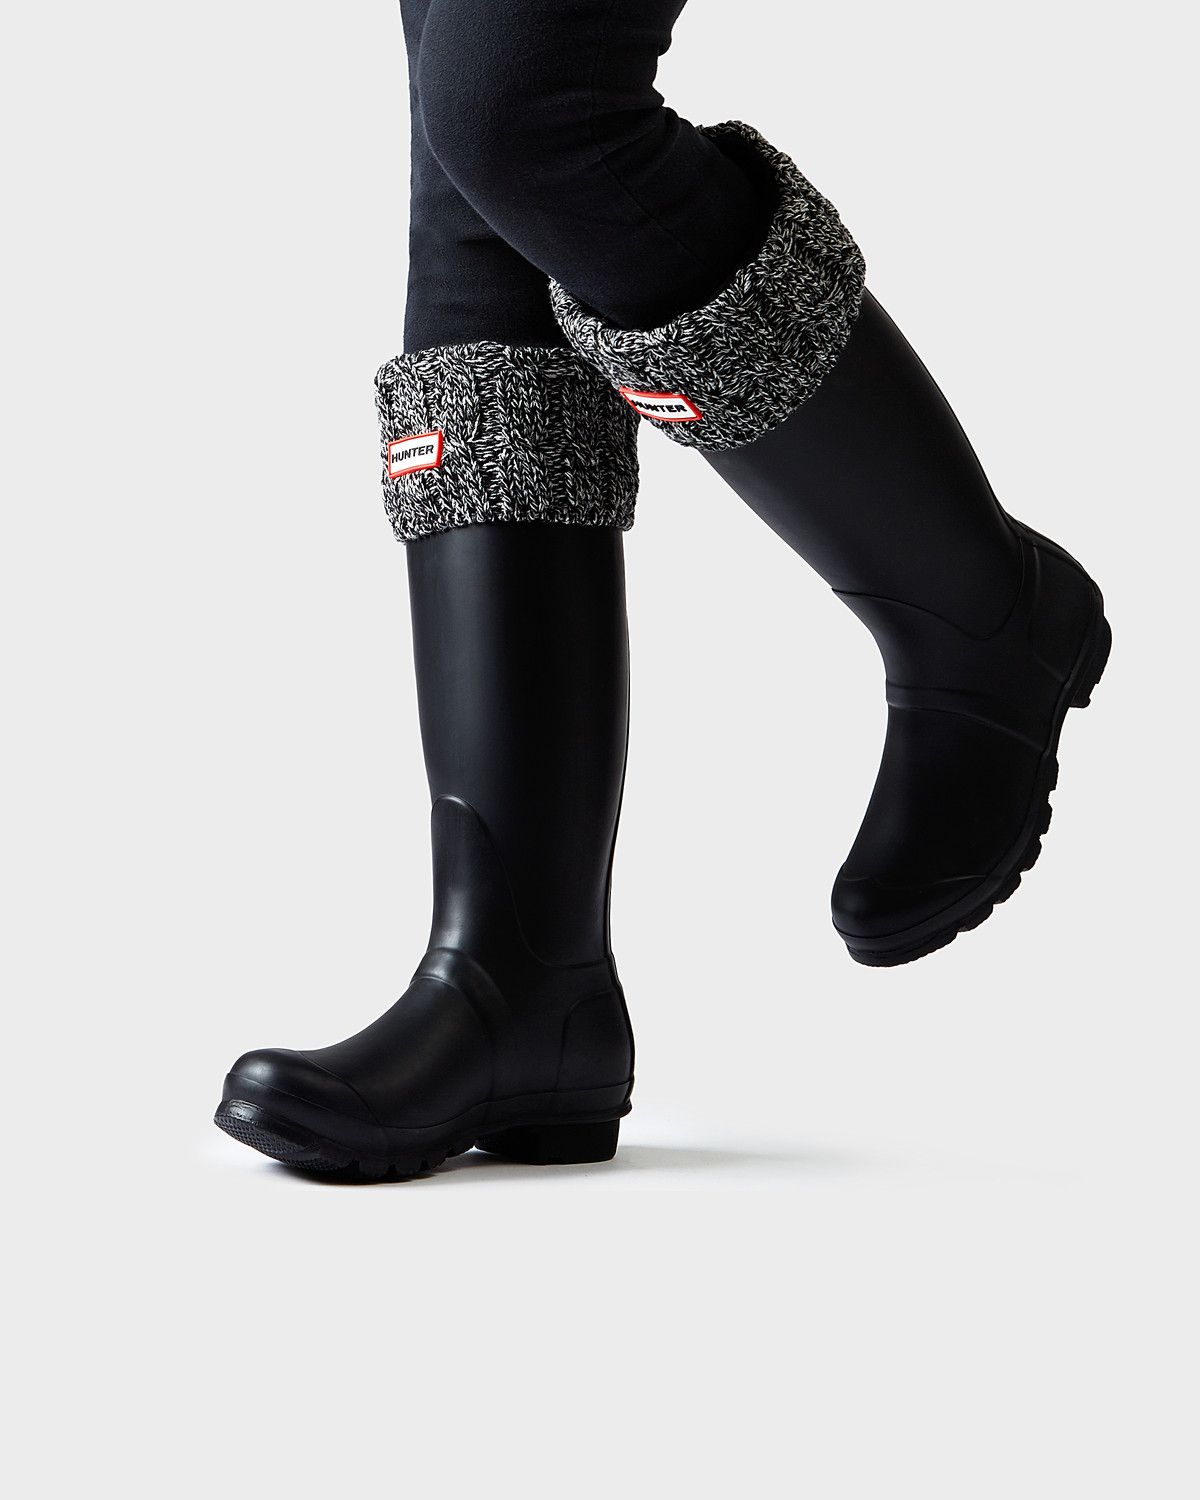 competitive price 3c94e 1ab69 Original 6 Stitch Cable Knitted Cuff Tall Boot Socks | Boots ...